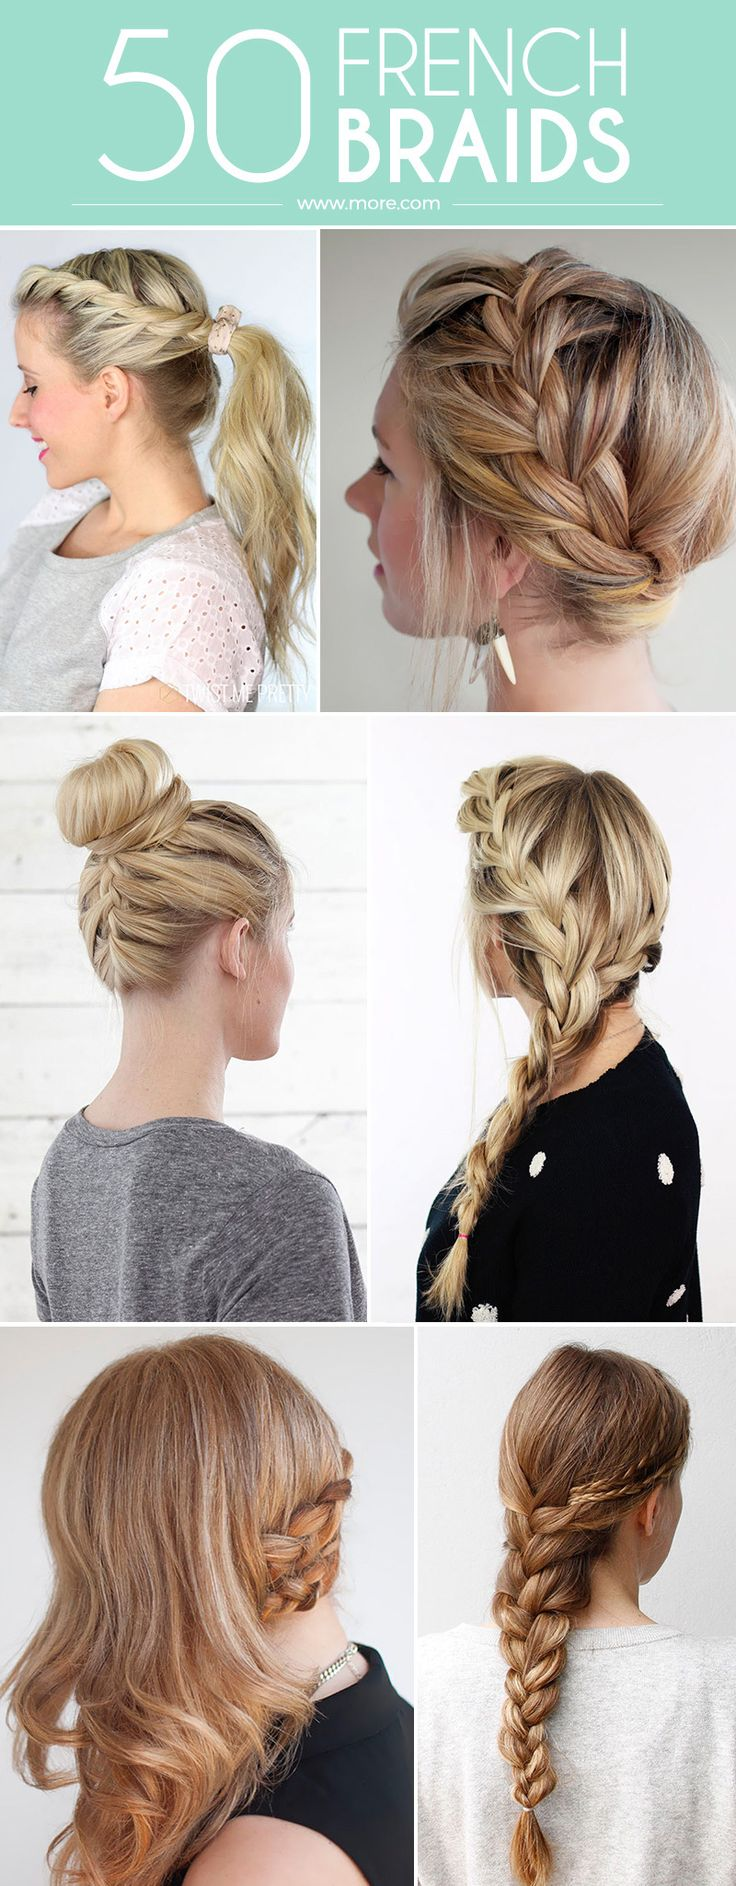 With so many styles, there's a French braid here for every occasion.